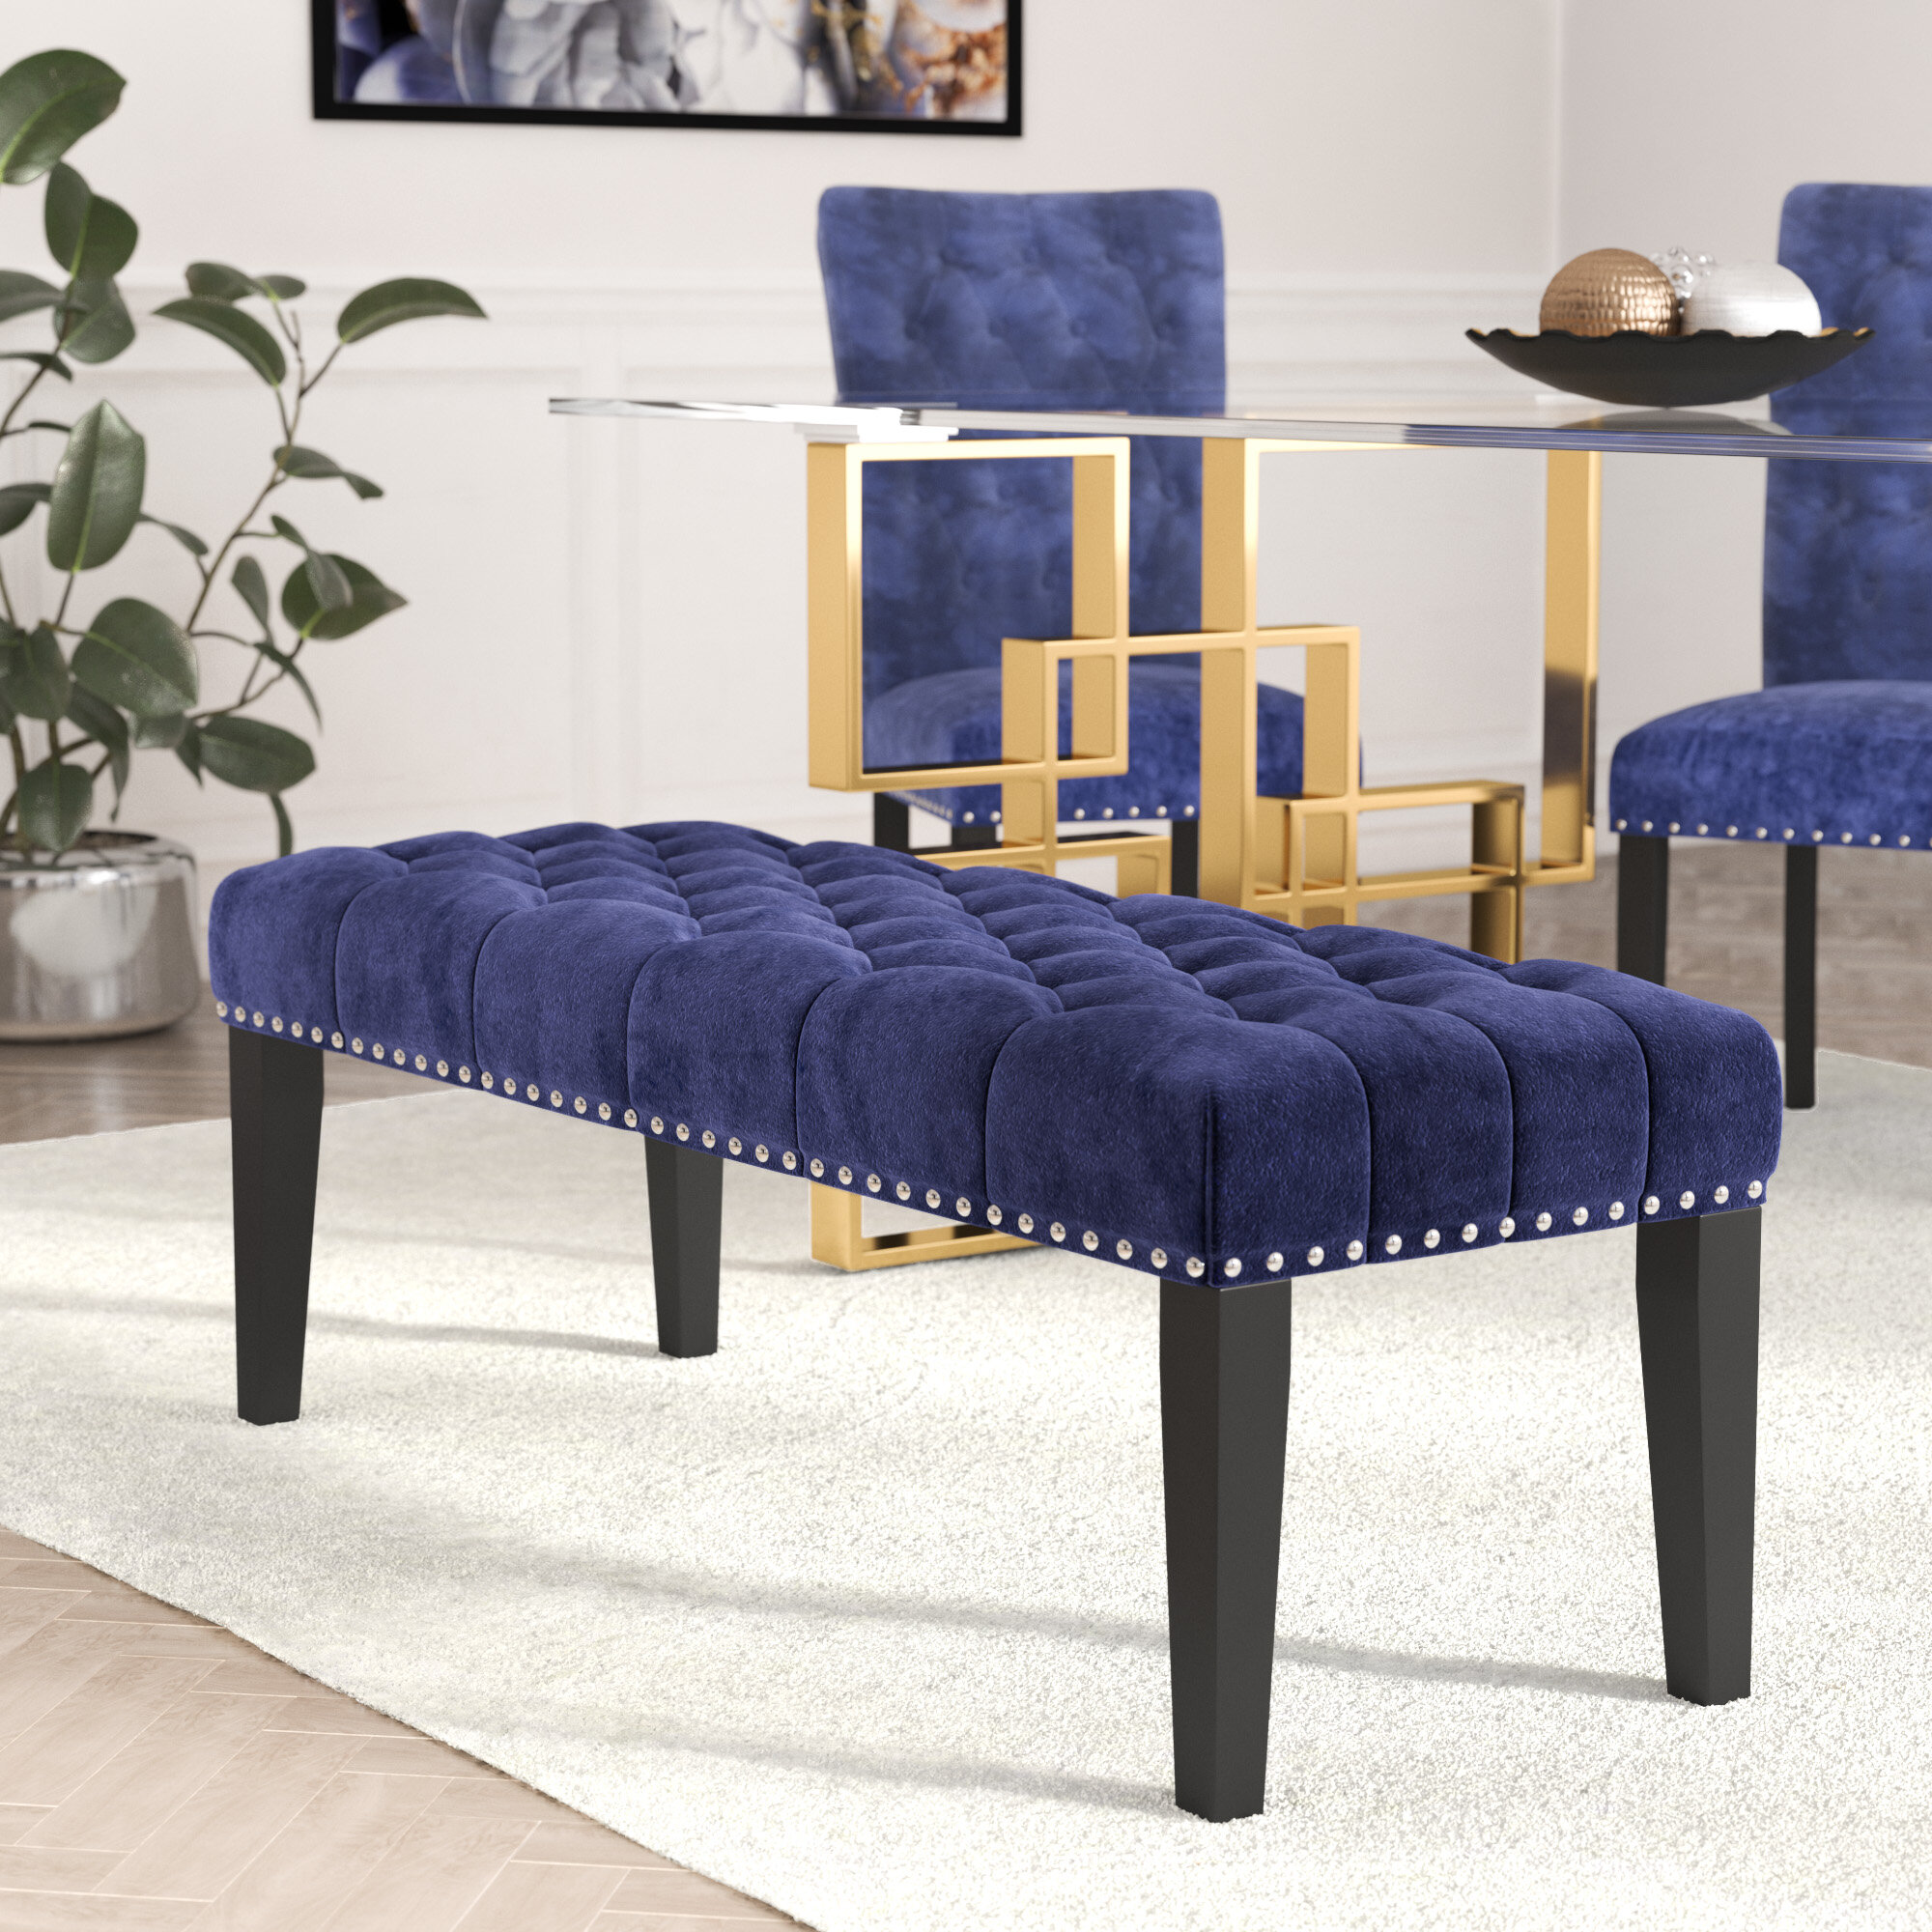 home finished aldrych metal bench aldon pu products leather legs iconic aldan upholstered finish brass aldelfo navy hairpin aldo frame